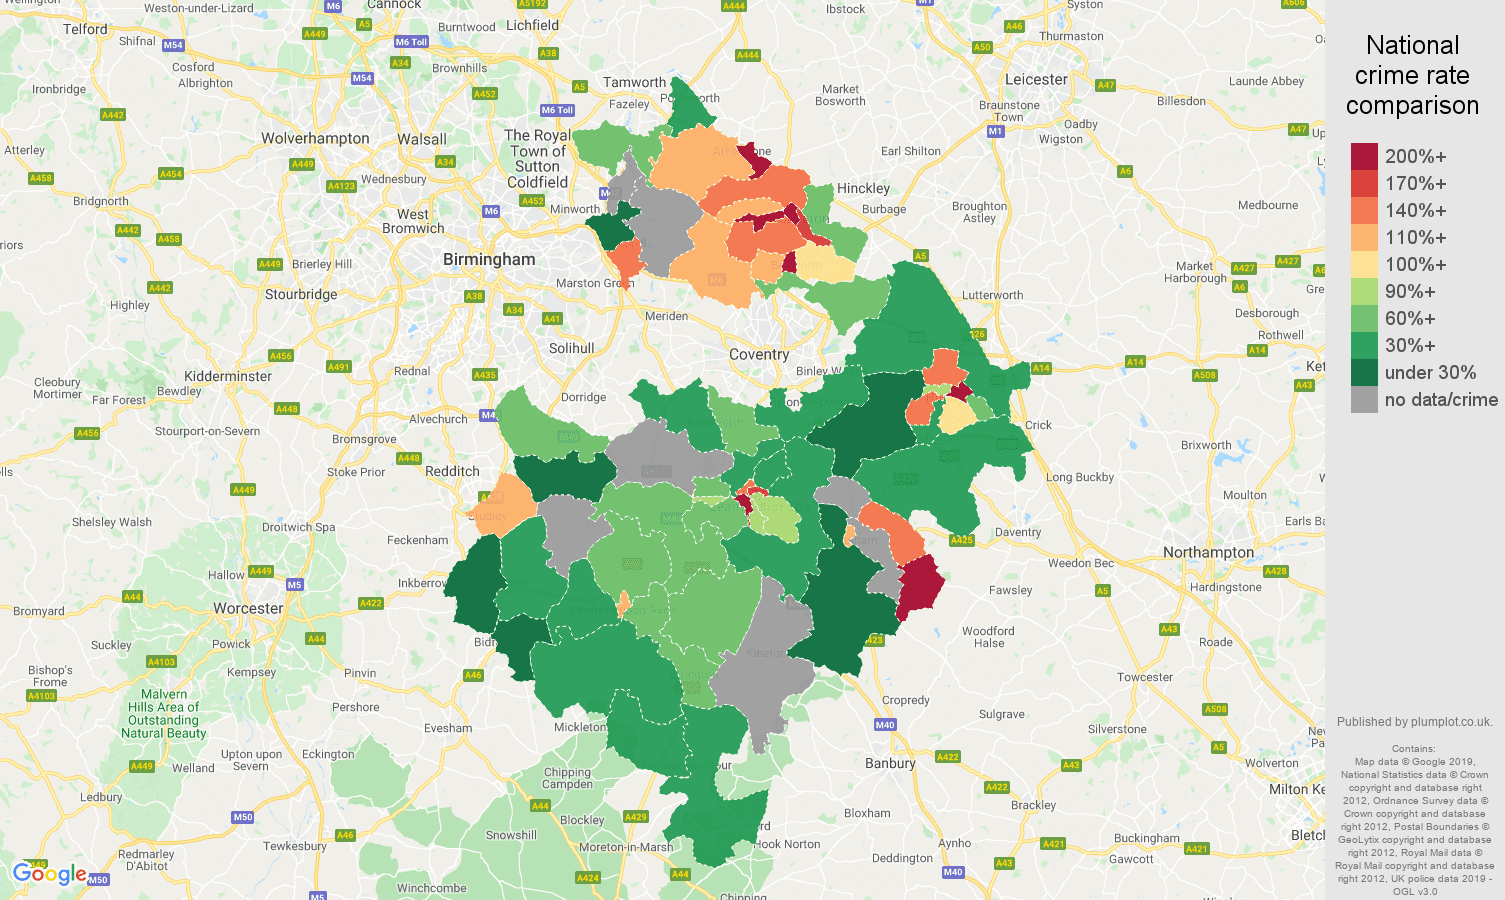 Warwickshire possession of weapons crime rate comparison map